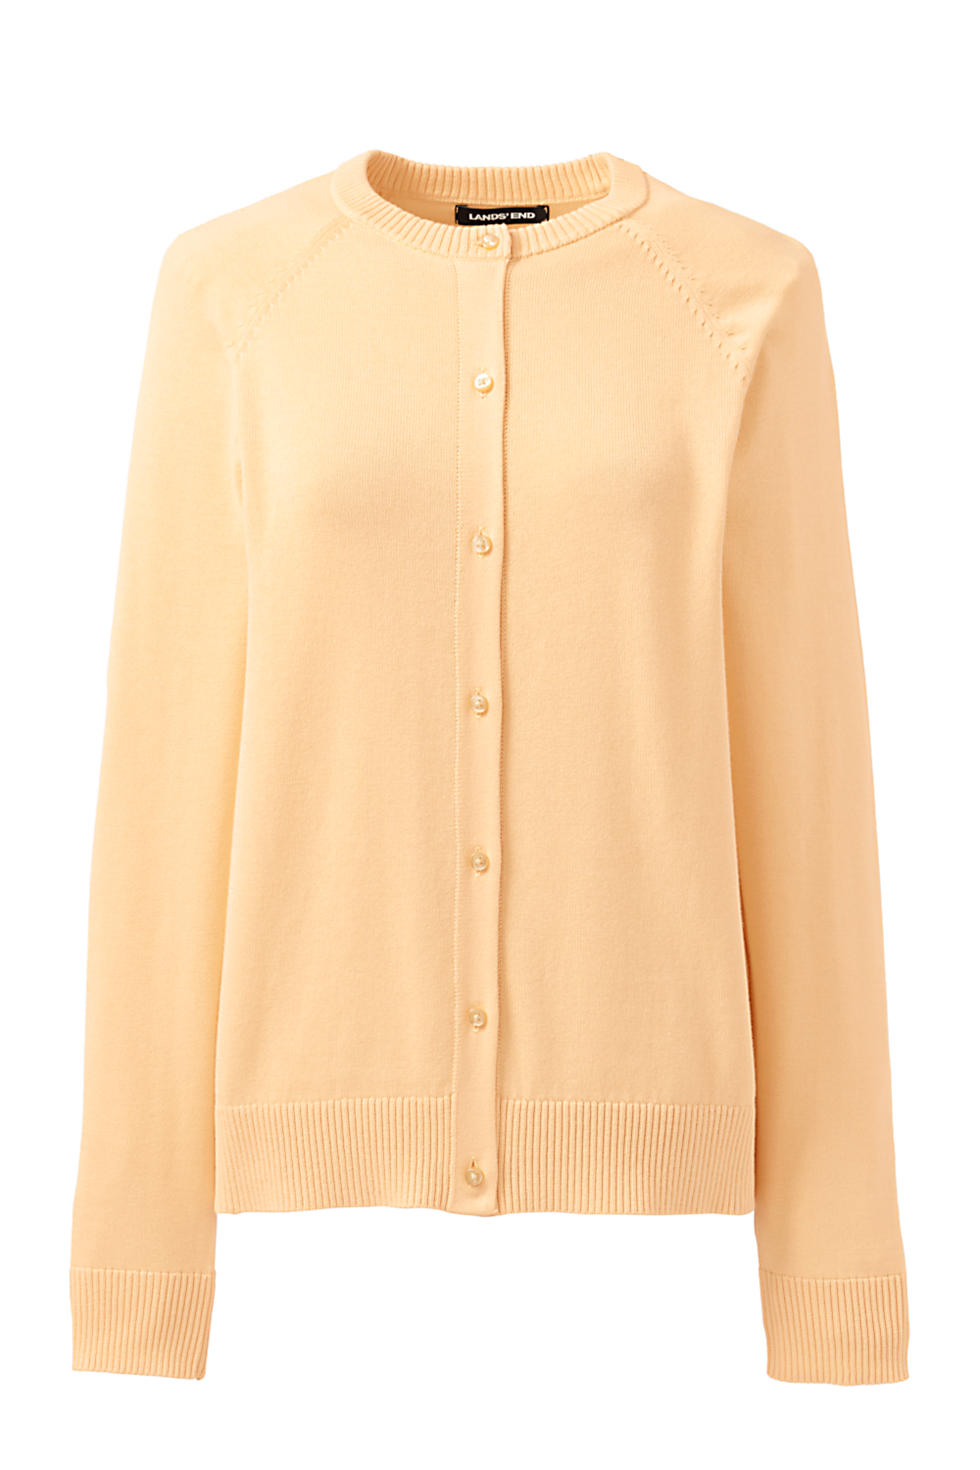 Cardigan Sweaters for Women, Cardigans | Lands' End